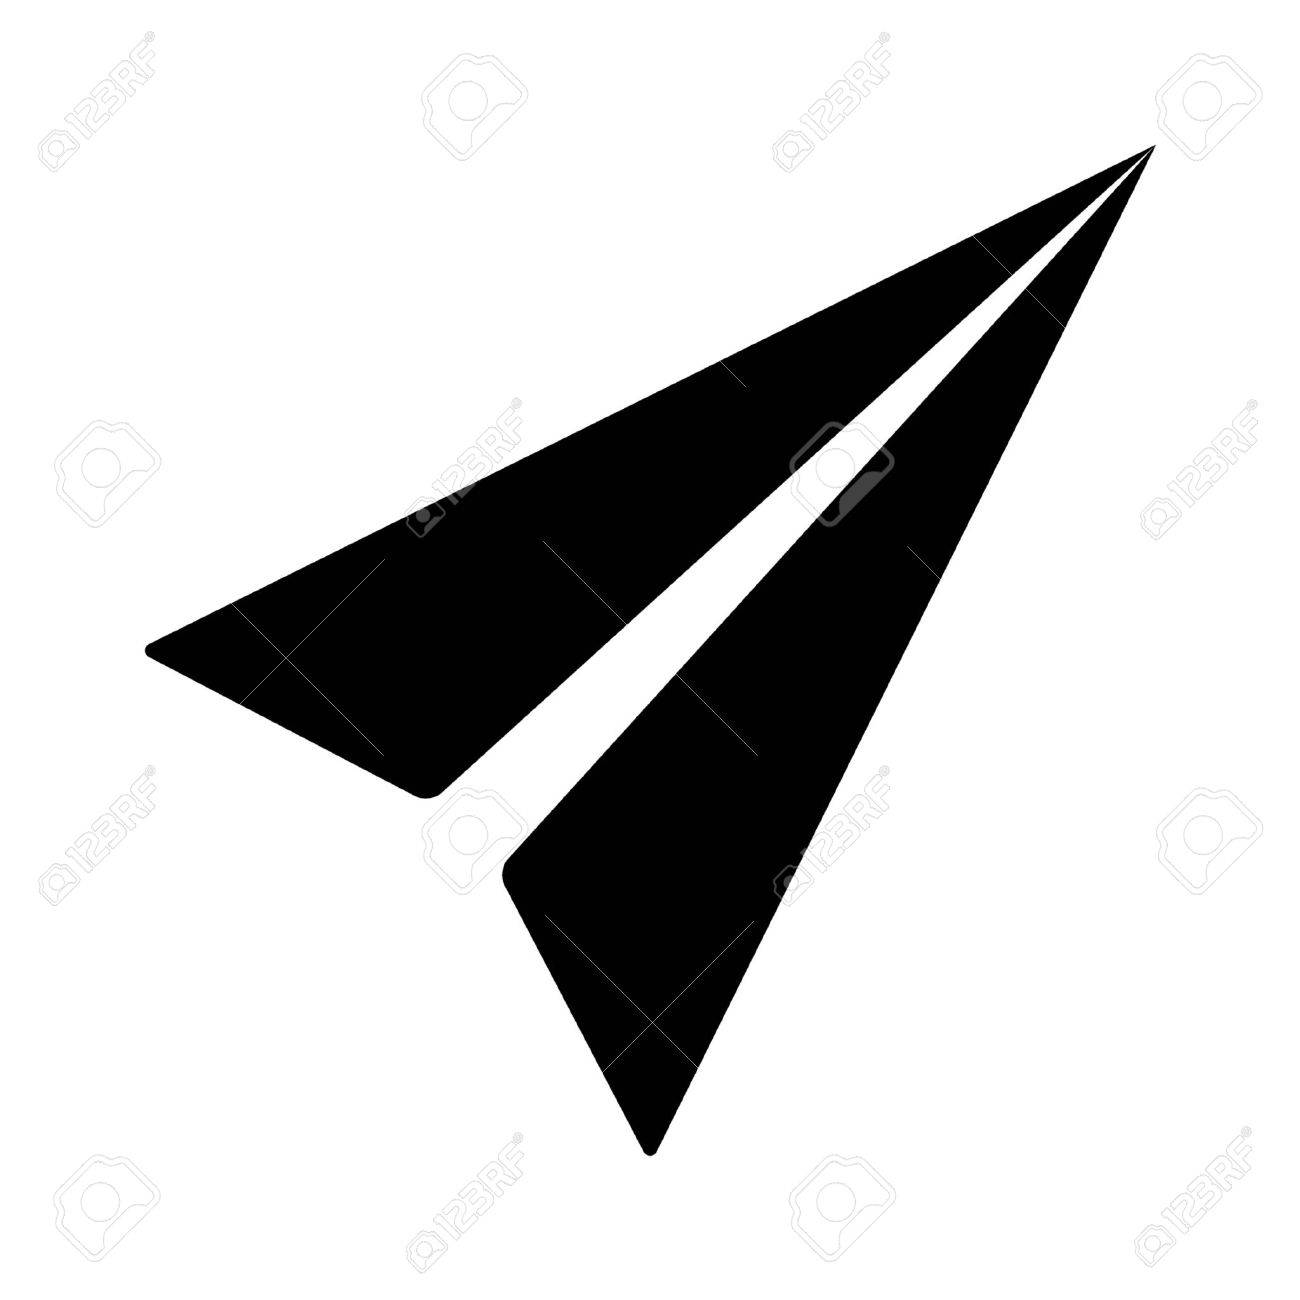 mail paper airplane flat icon for apps and websites royalty free rh 123rf com paper flight vector paper flight vector